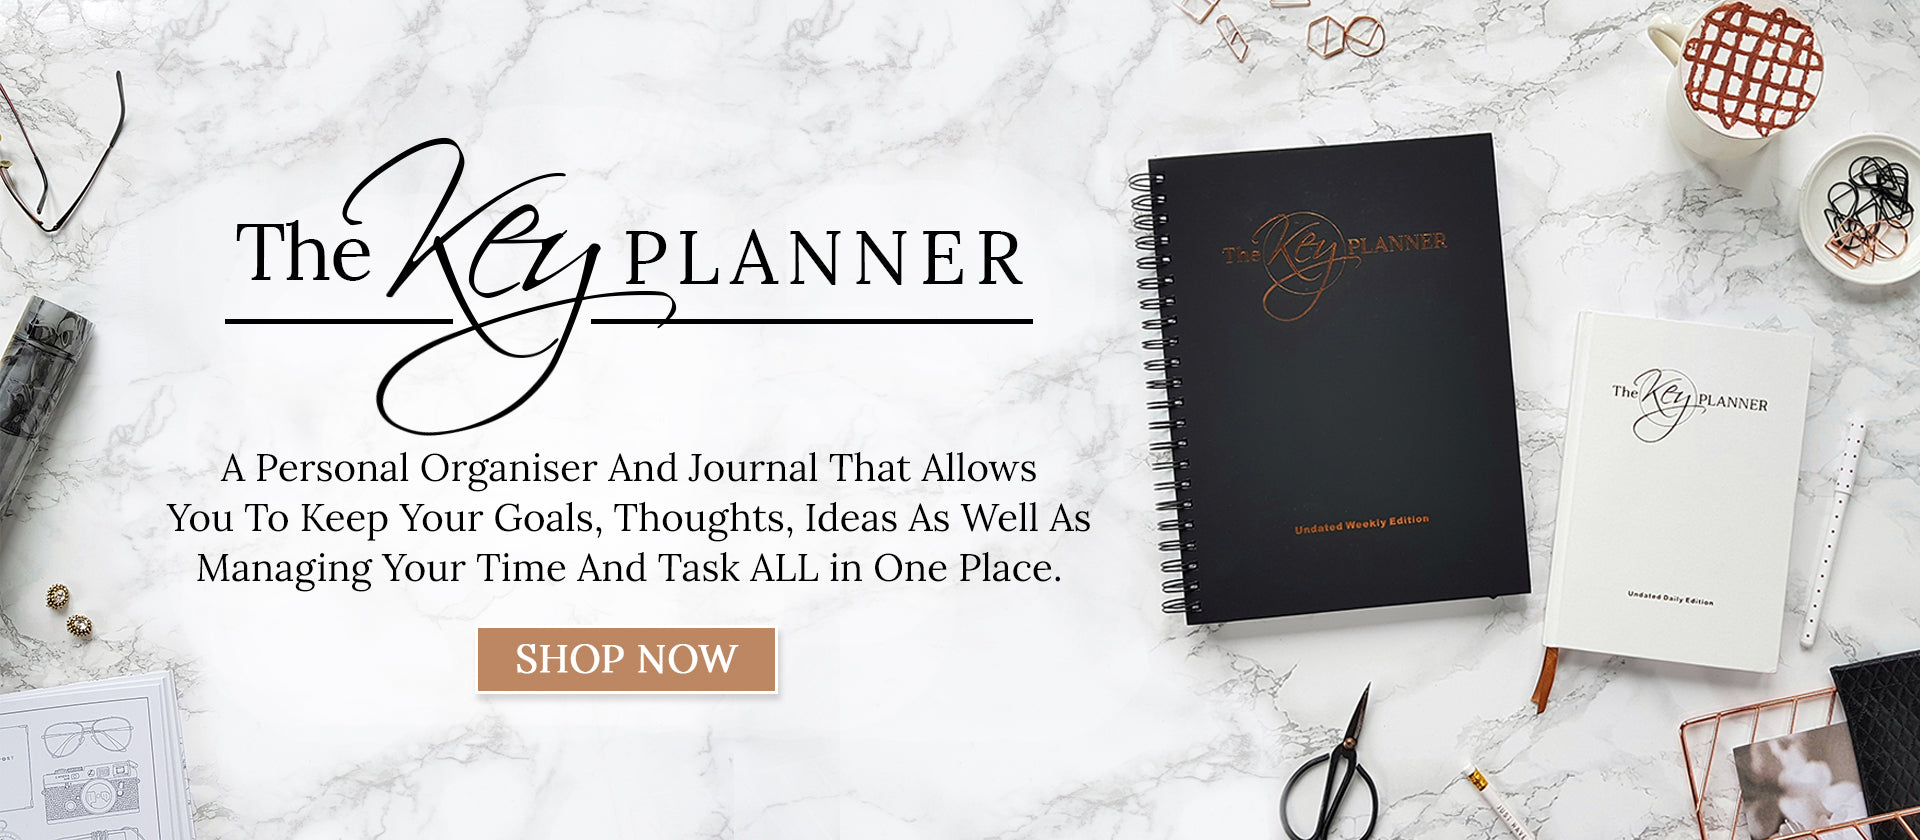 The Key Planner Personal Organiser and Journal